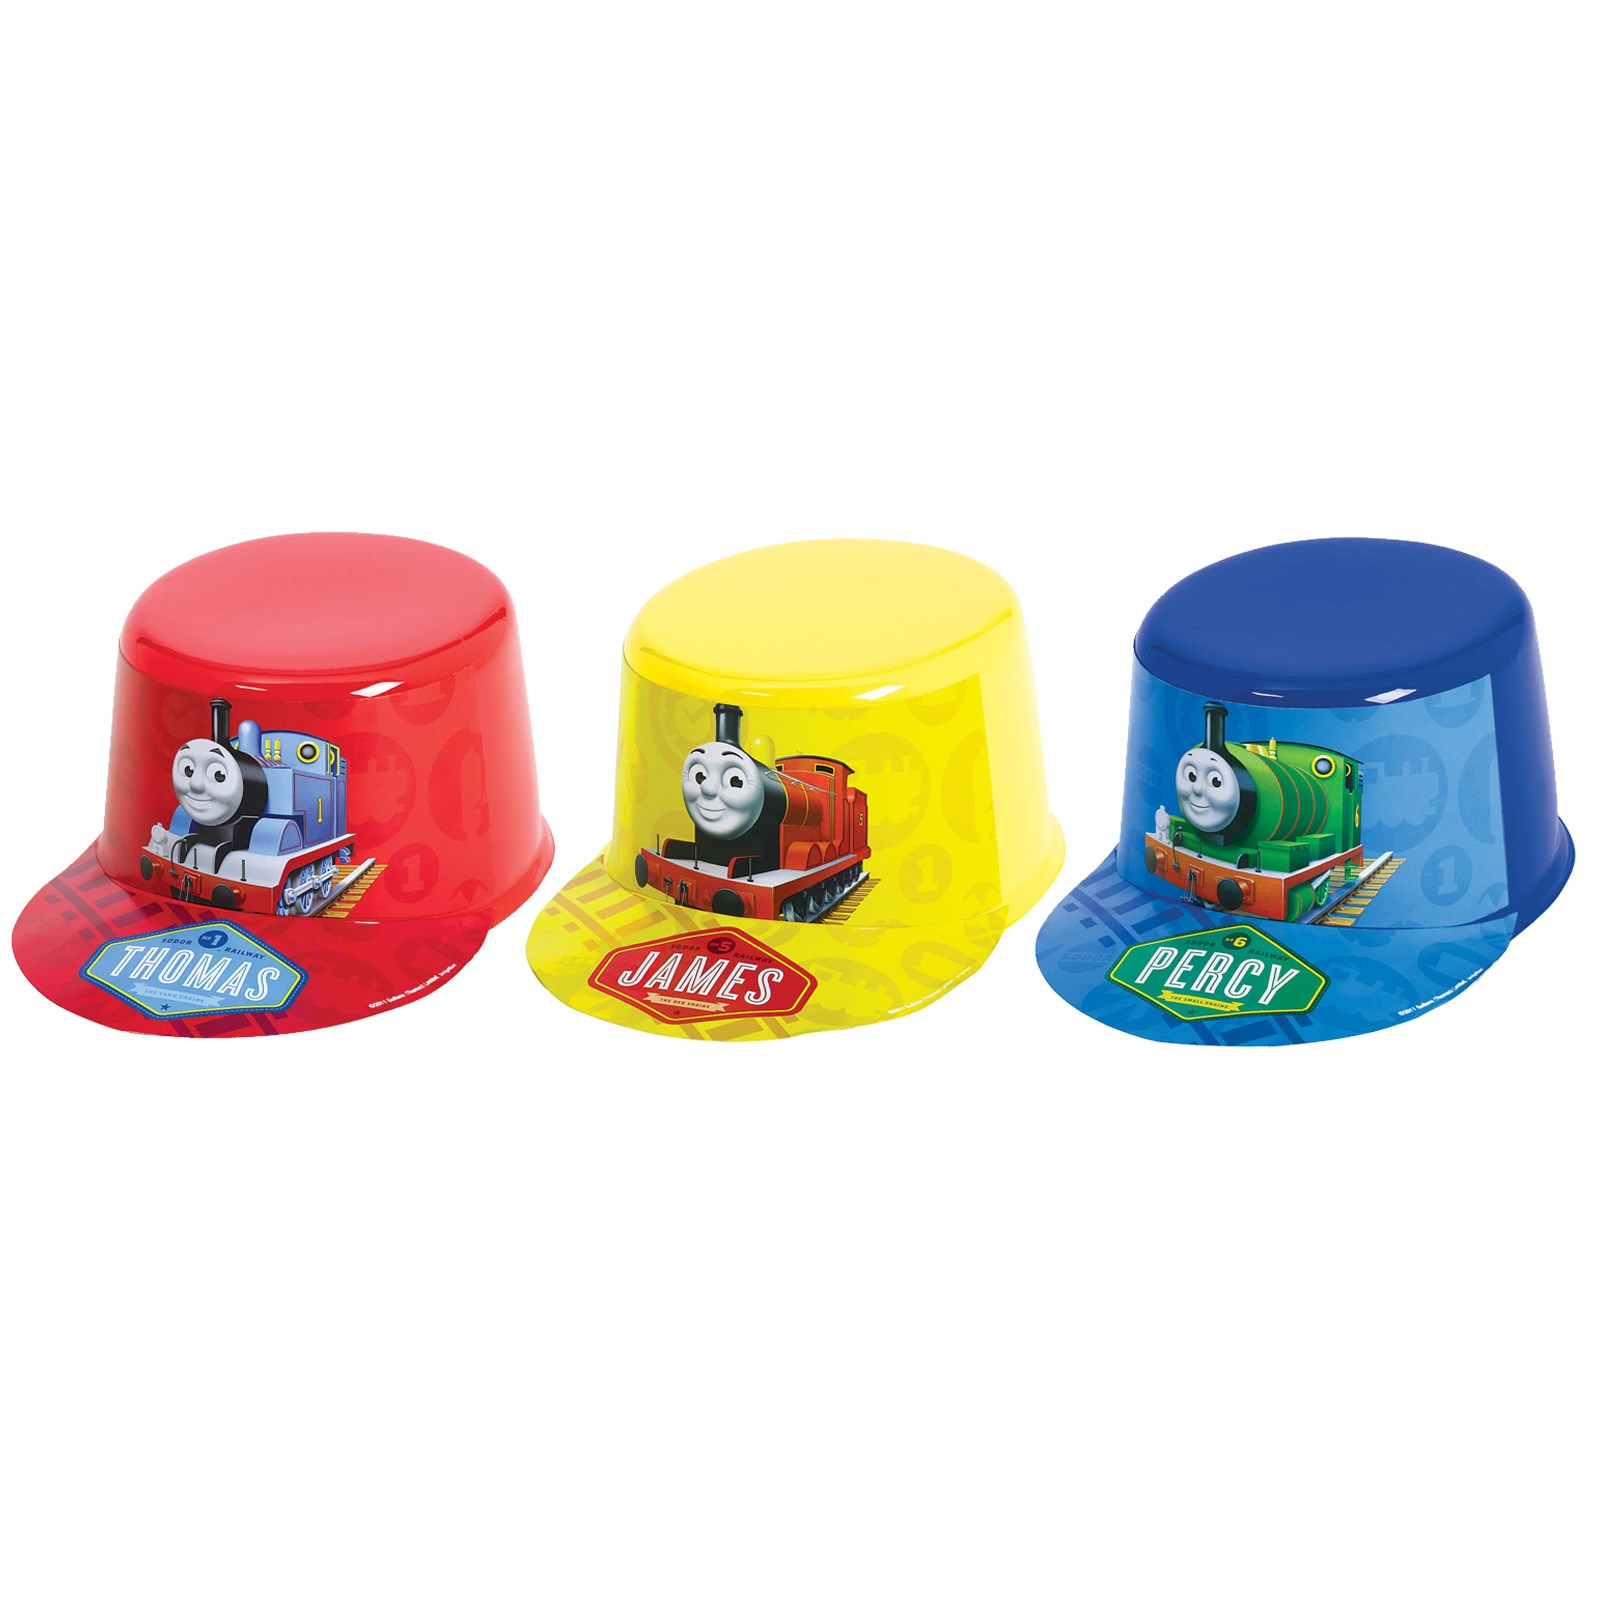 Thomas the Tank Vac Form Hat- Thomas the Train Party Games for Kids